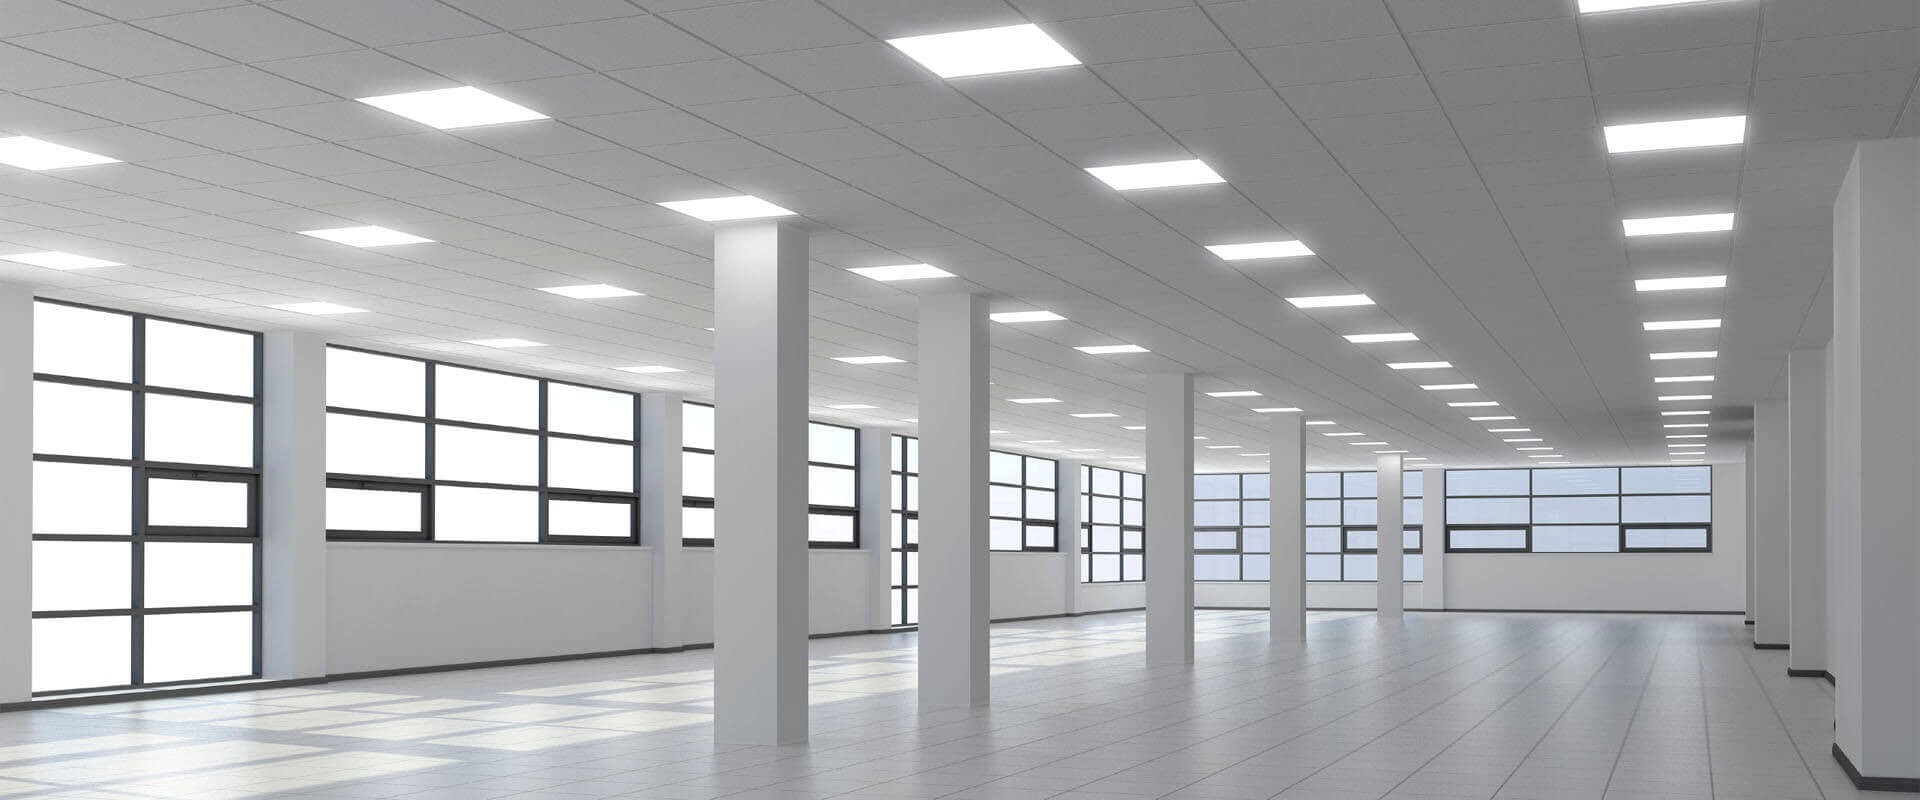 LED lighting services in Grays